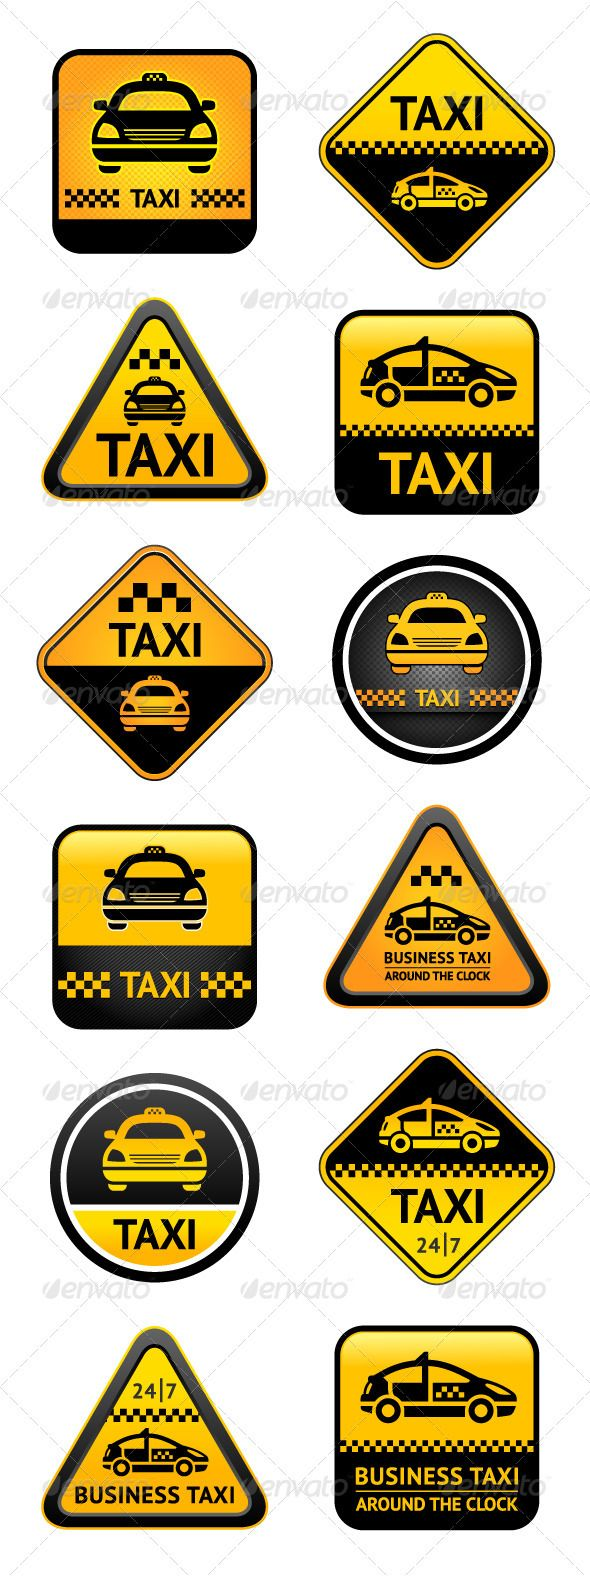 Taxi Set Buttons GraphicRiver Taxi set road signs